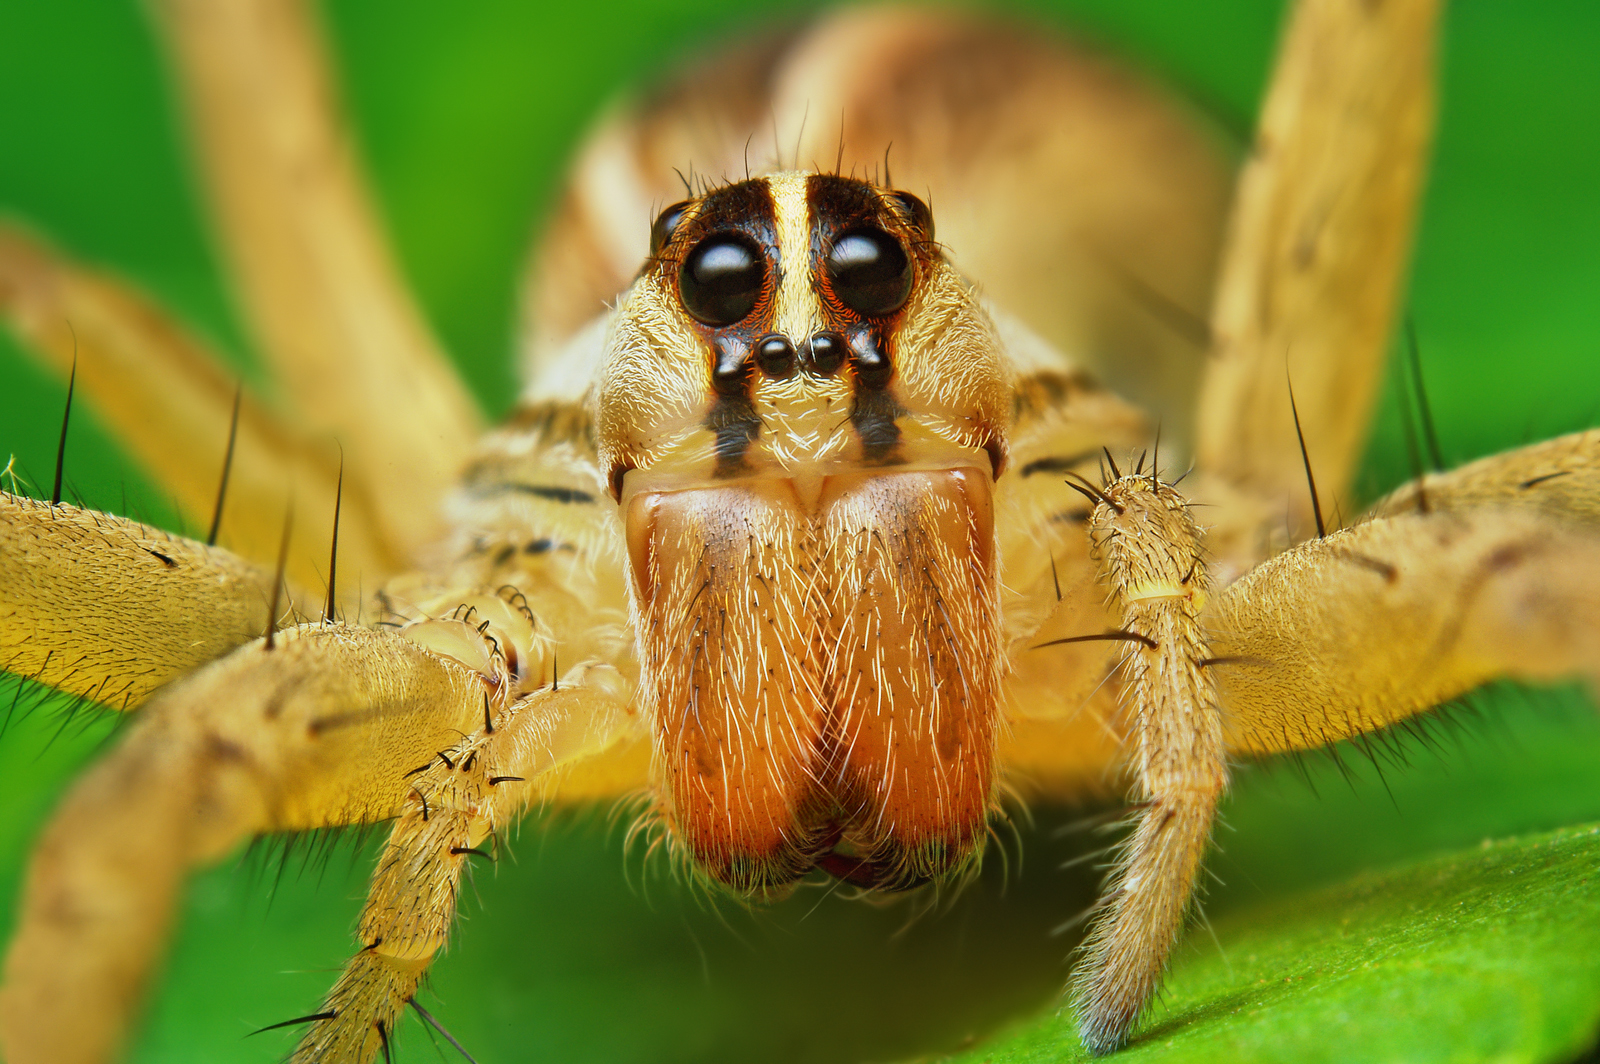 3609624150 69ee27f38d o Bug close up, beautiful spider photos by Shahan [28 Pics]